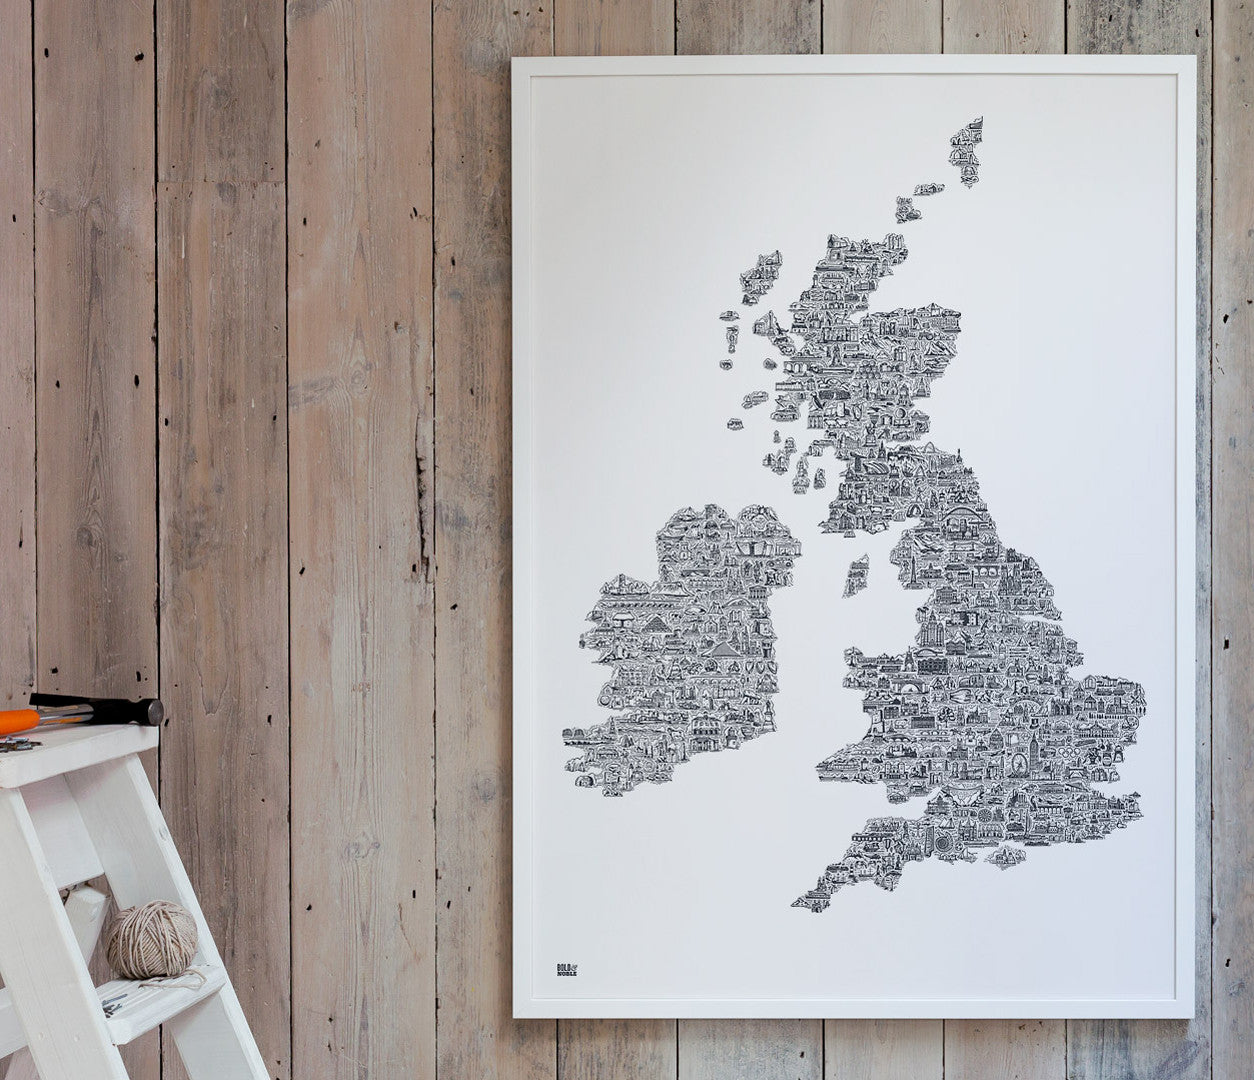 'UK and Ireland' XL Illustrated Map in Sheer Slate